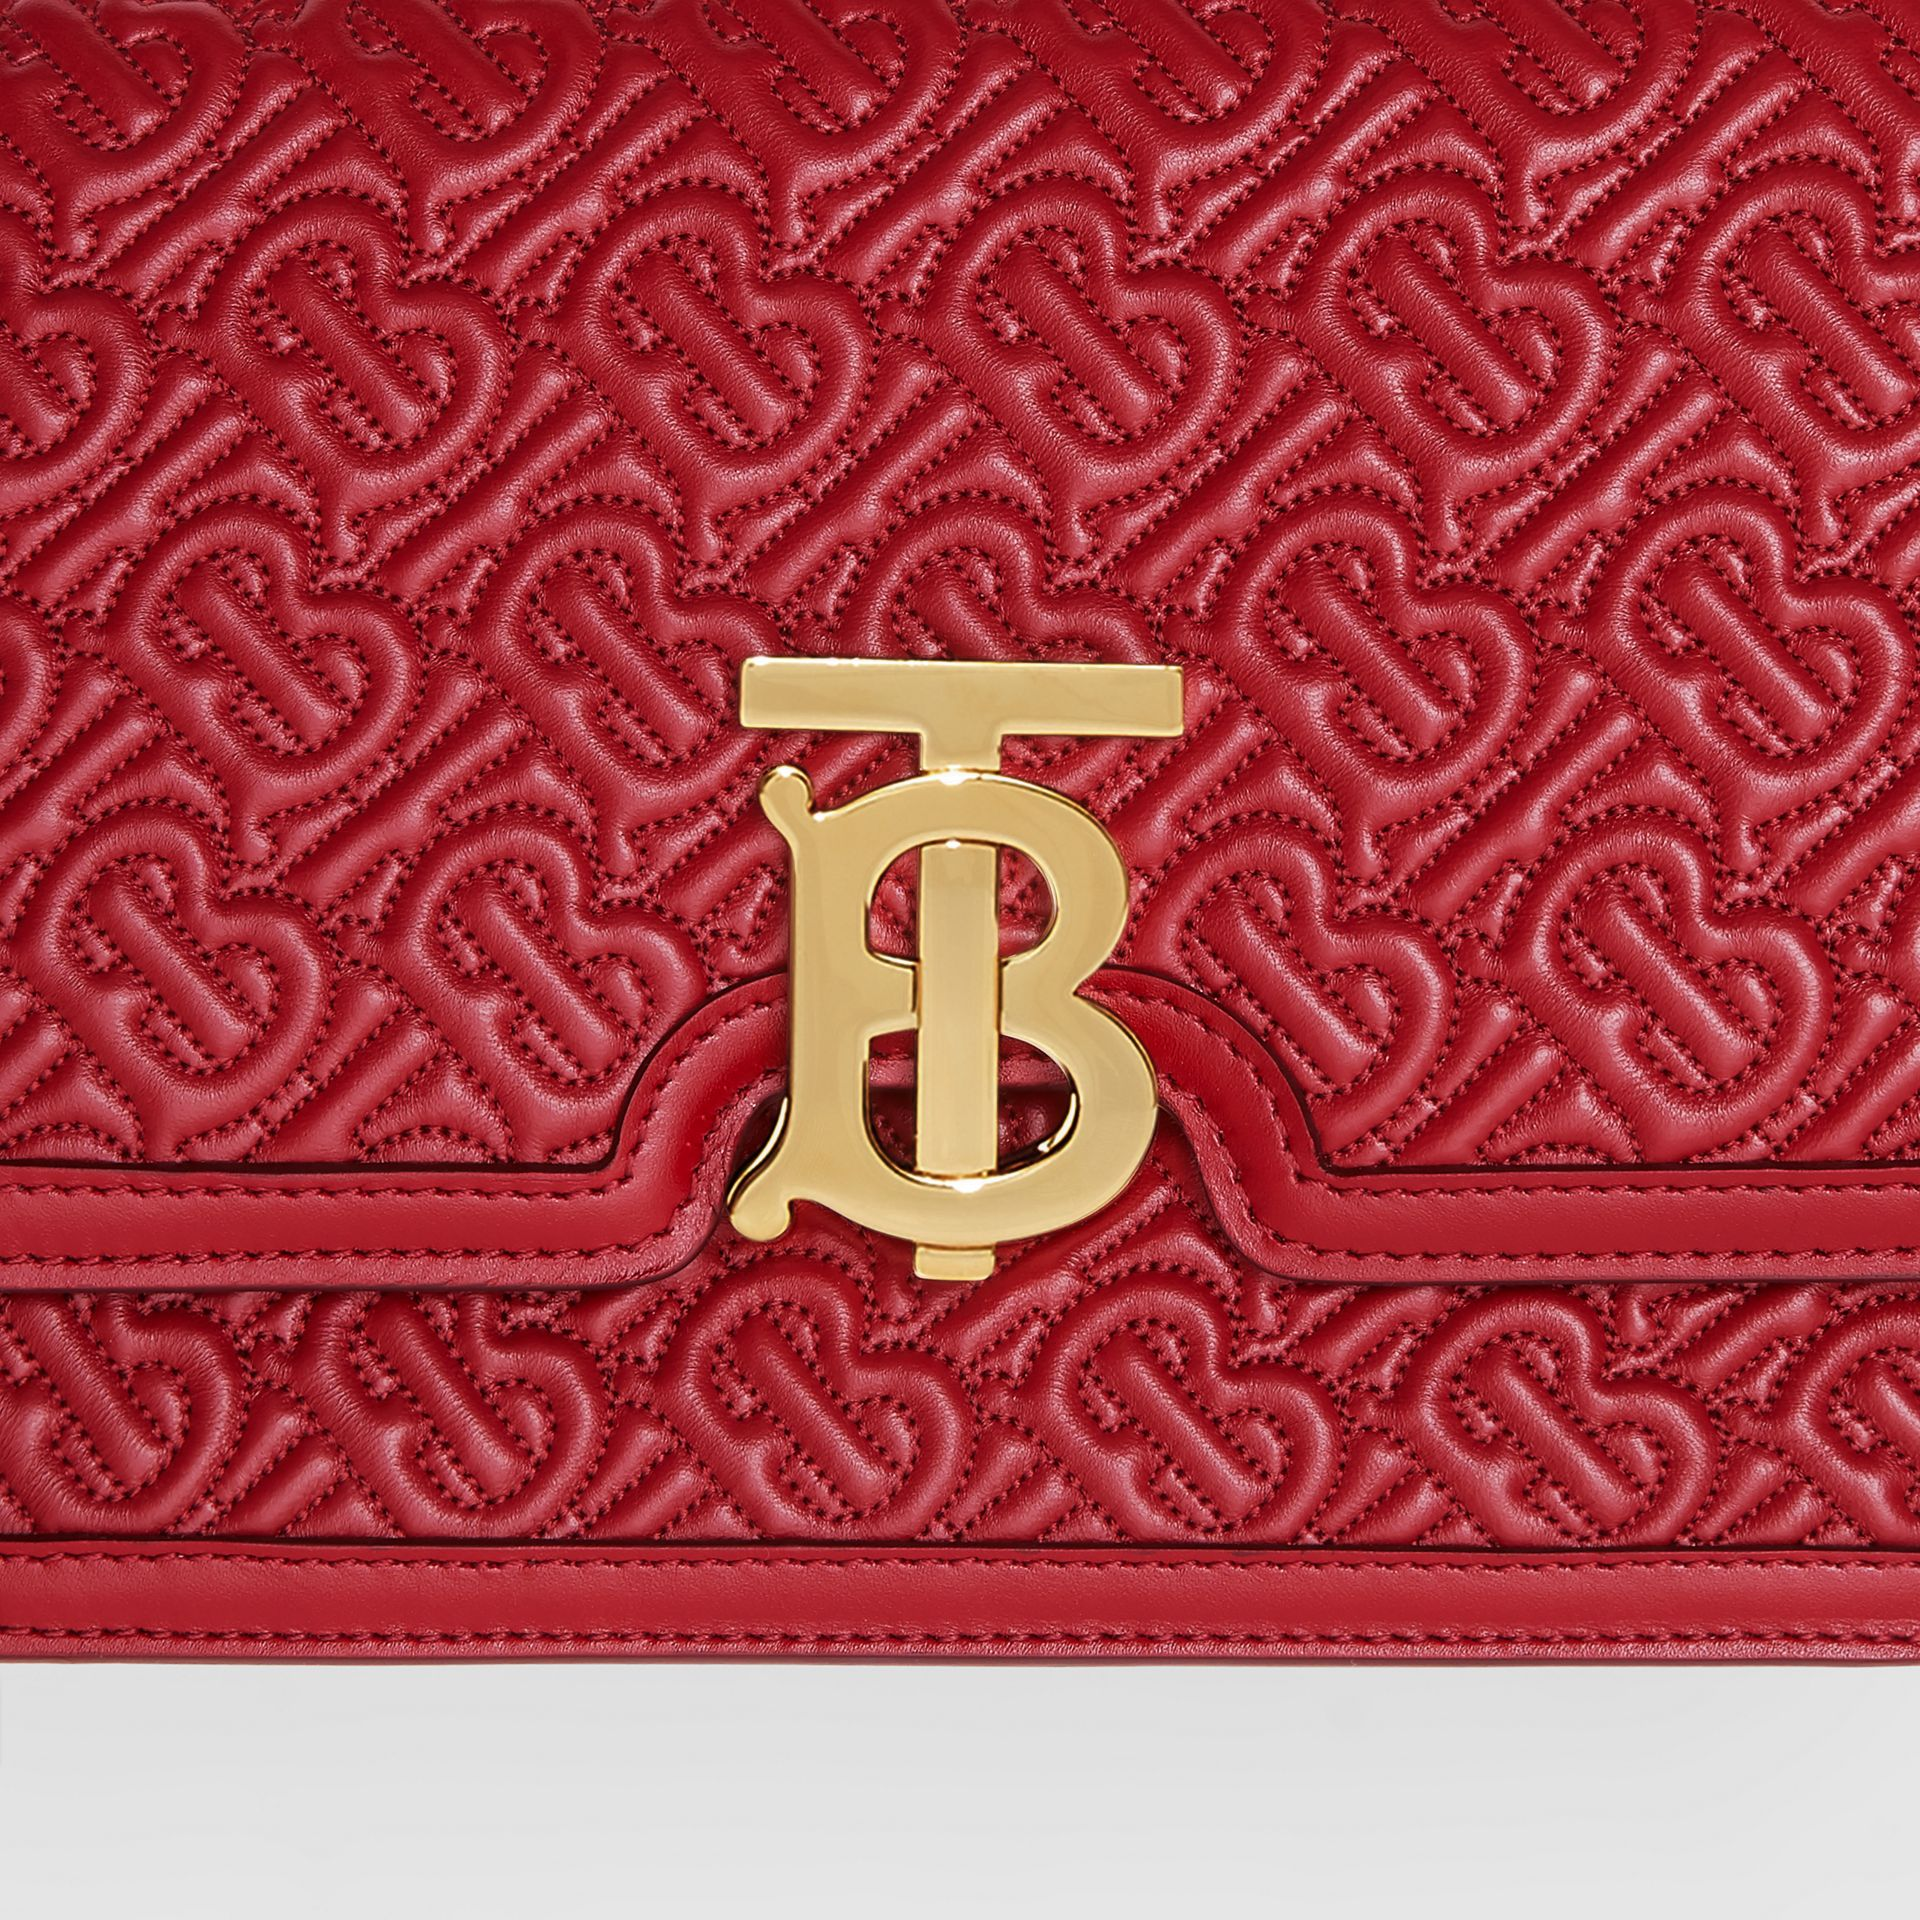 Small Quilted Monogram Lambskin TB Bag in Dark Carmine | Burberry United Kingdom - gallery image 1